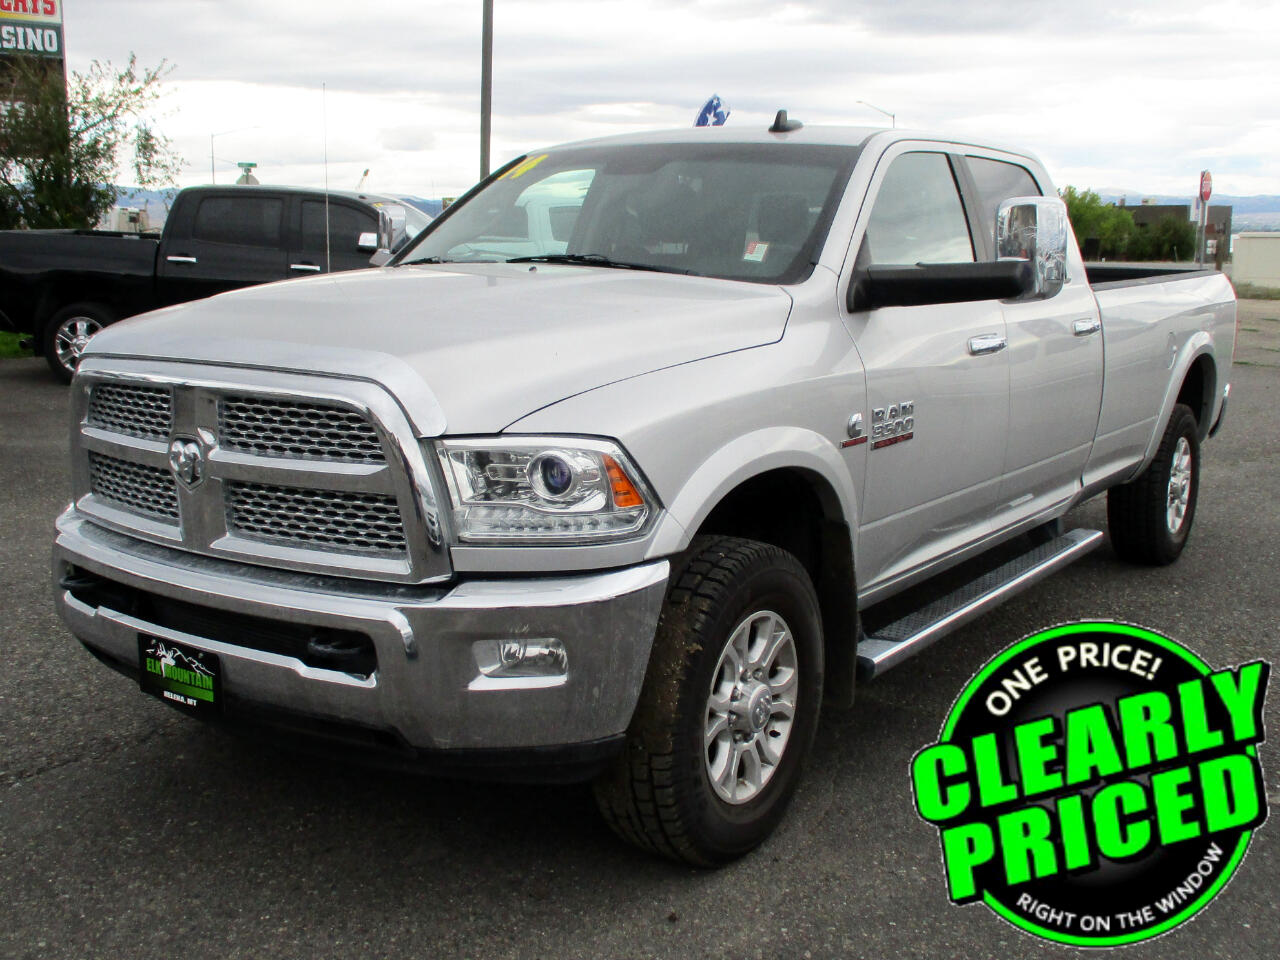 2014 RAM 3500 Laramie Crew Cab LWB 4WD